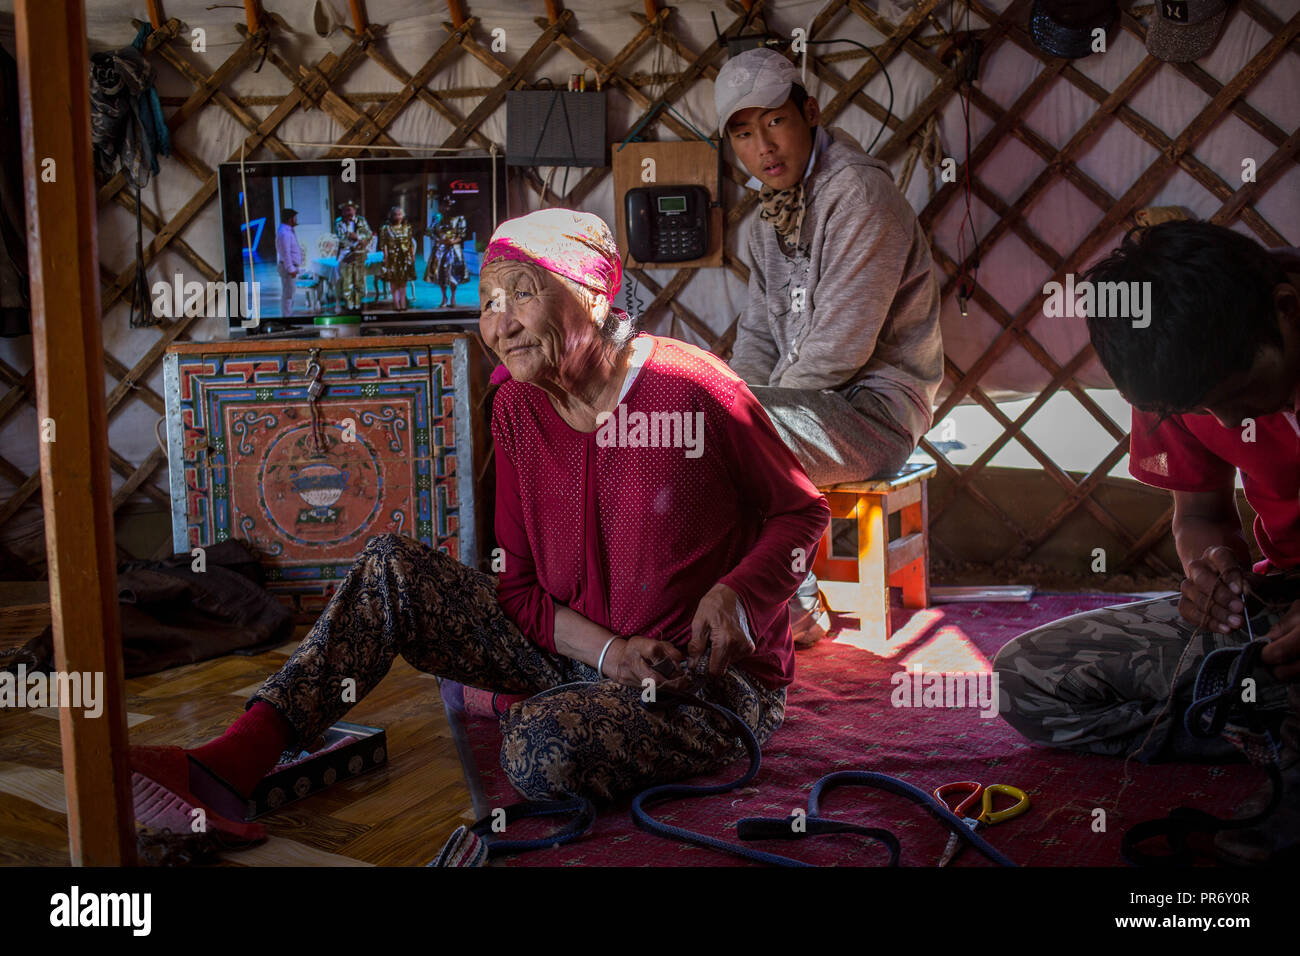 An old woman seen sewing homemade camel's muzzles for the